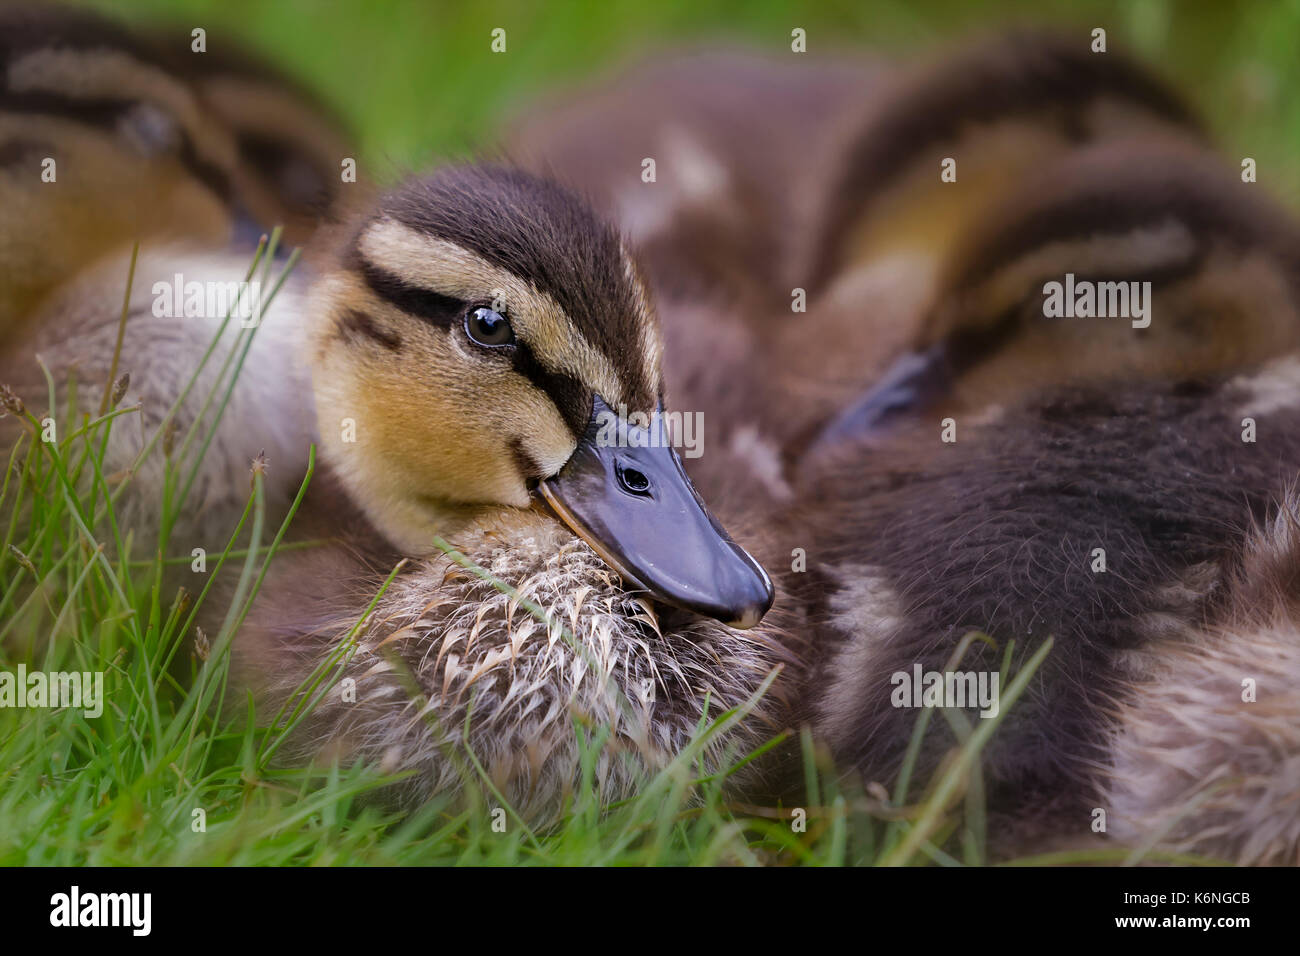 Ducklings Cuddling - Hybrid baby ducklings cuddle and sleep together by the waters edge. Except for one curious Stock Photo